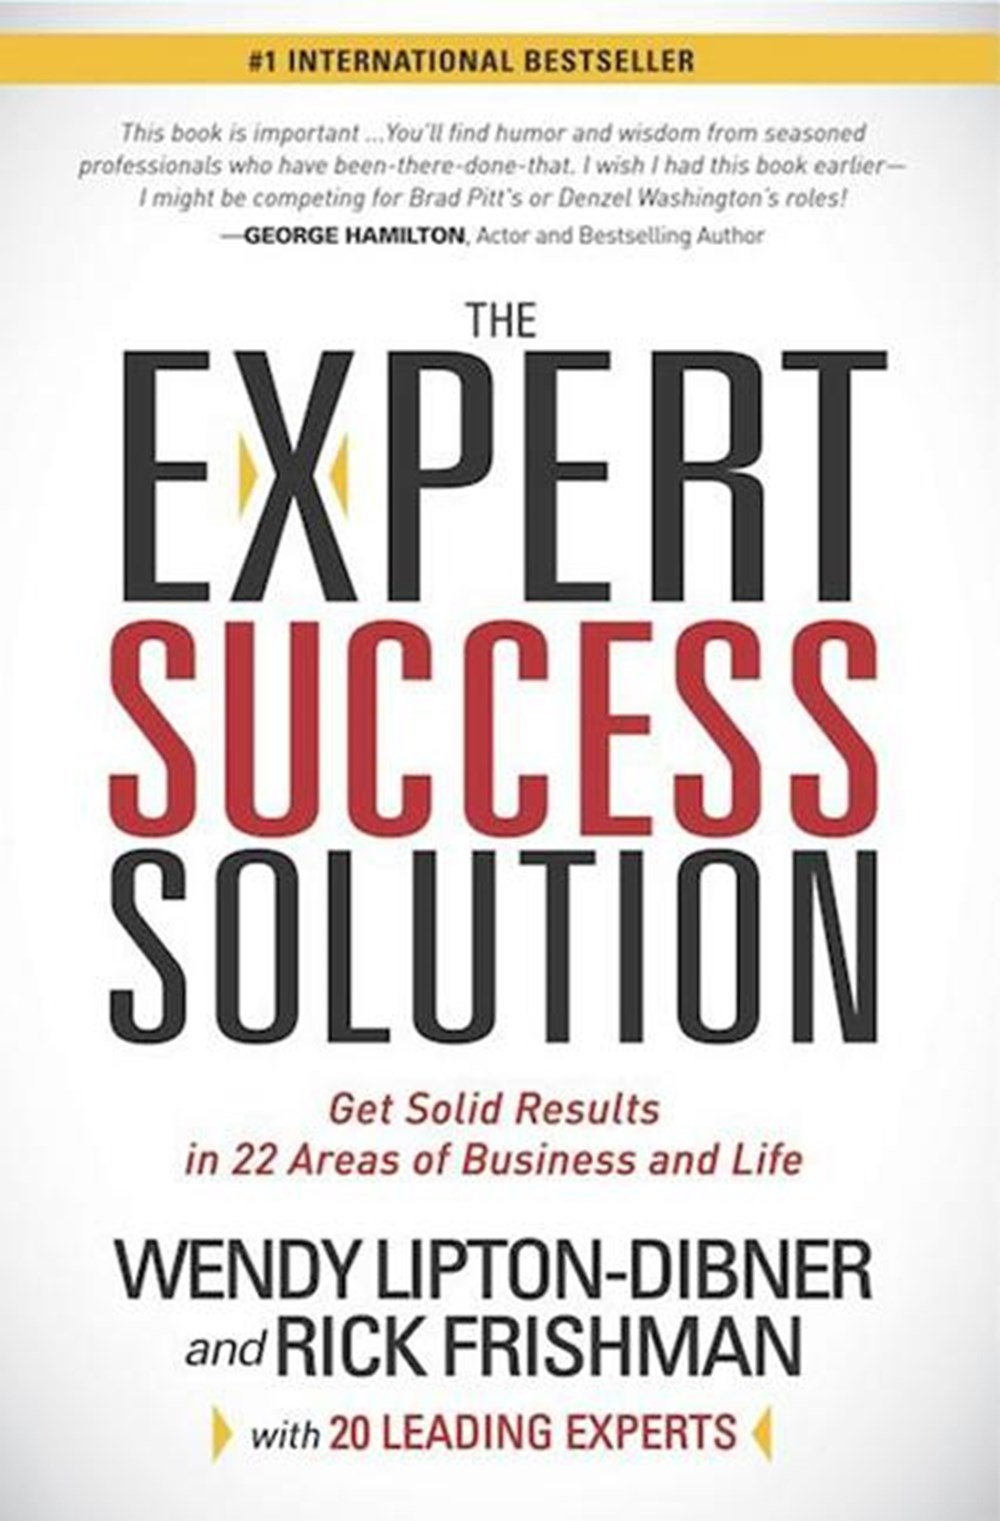 Expert Success Solution Get Solid Results in 22 Areas of Business and Life